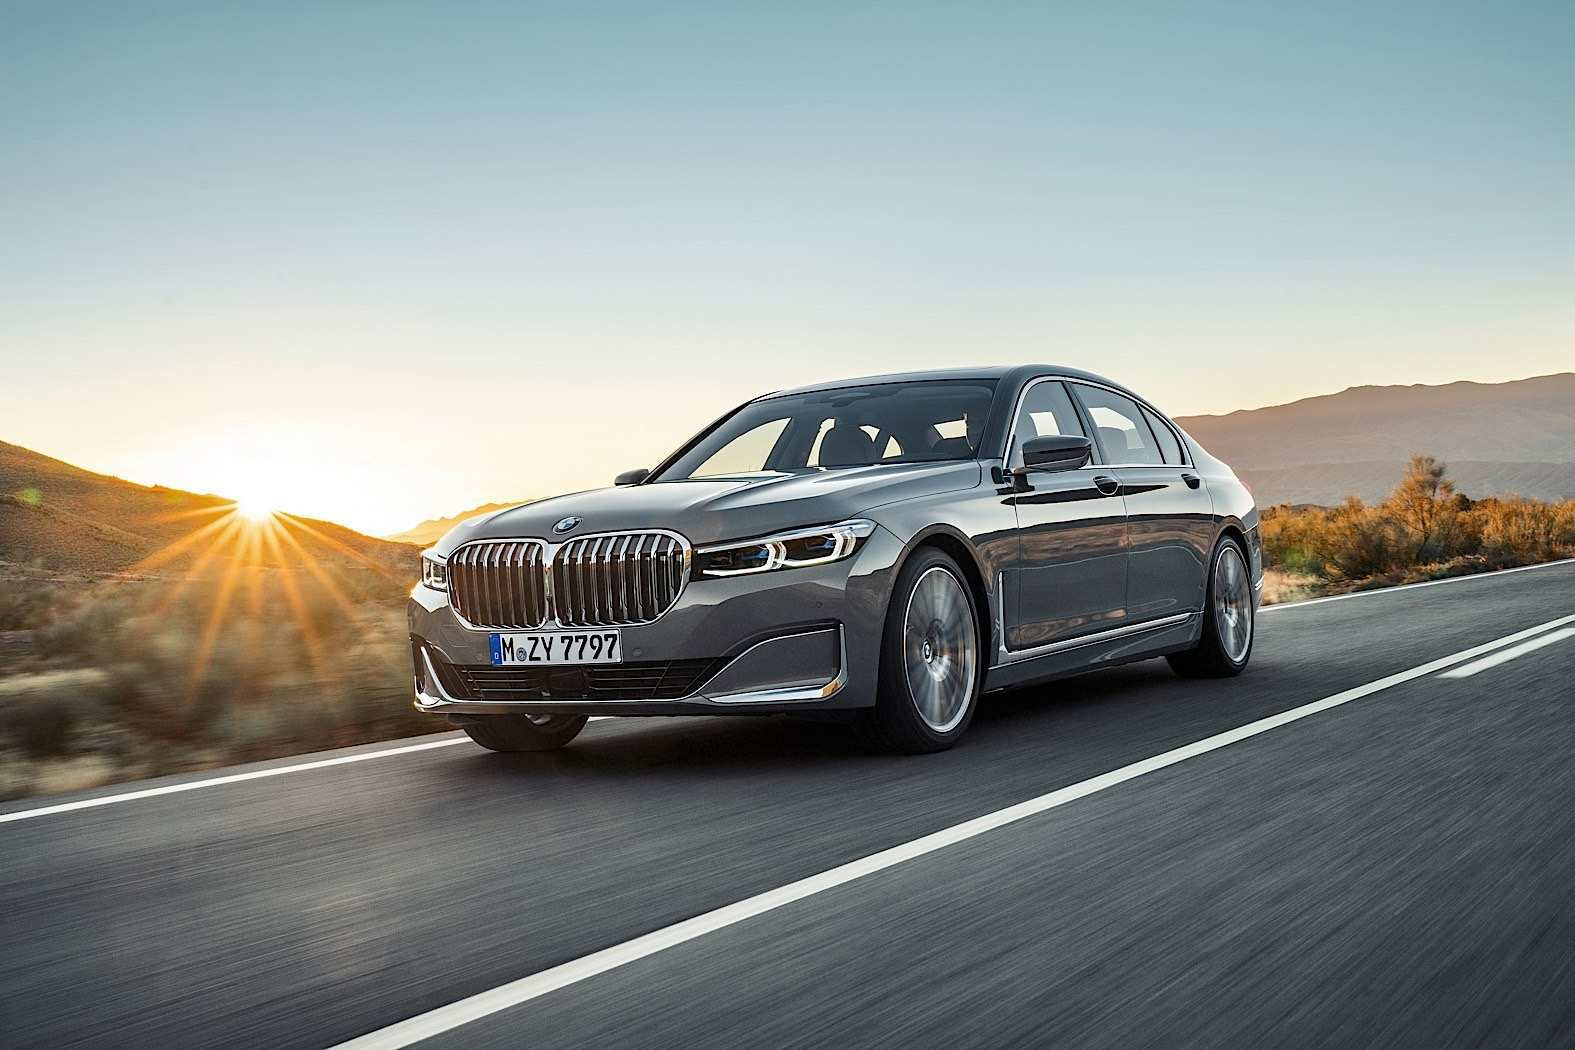 22 All New 2020 BMW 7 Series Lci Images with 2020 BMW 7 Series Lci